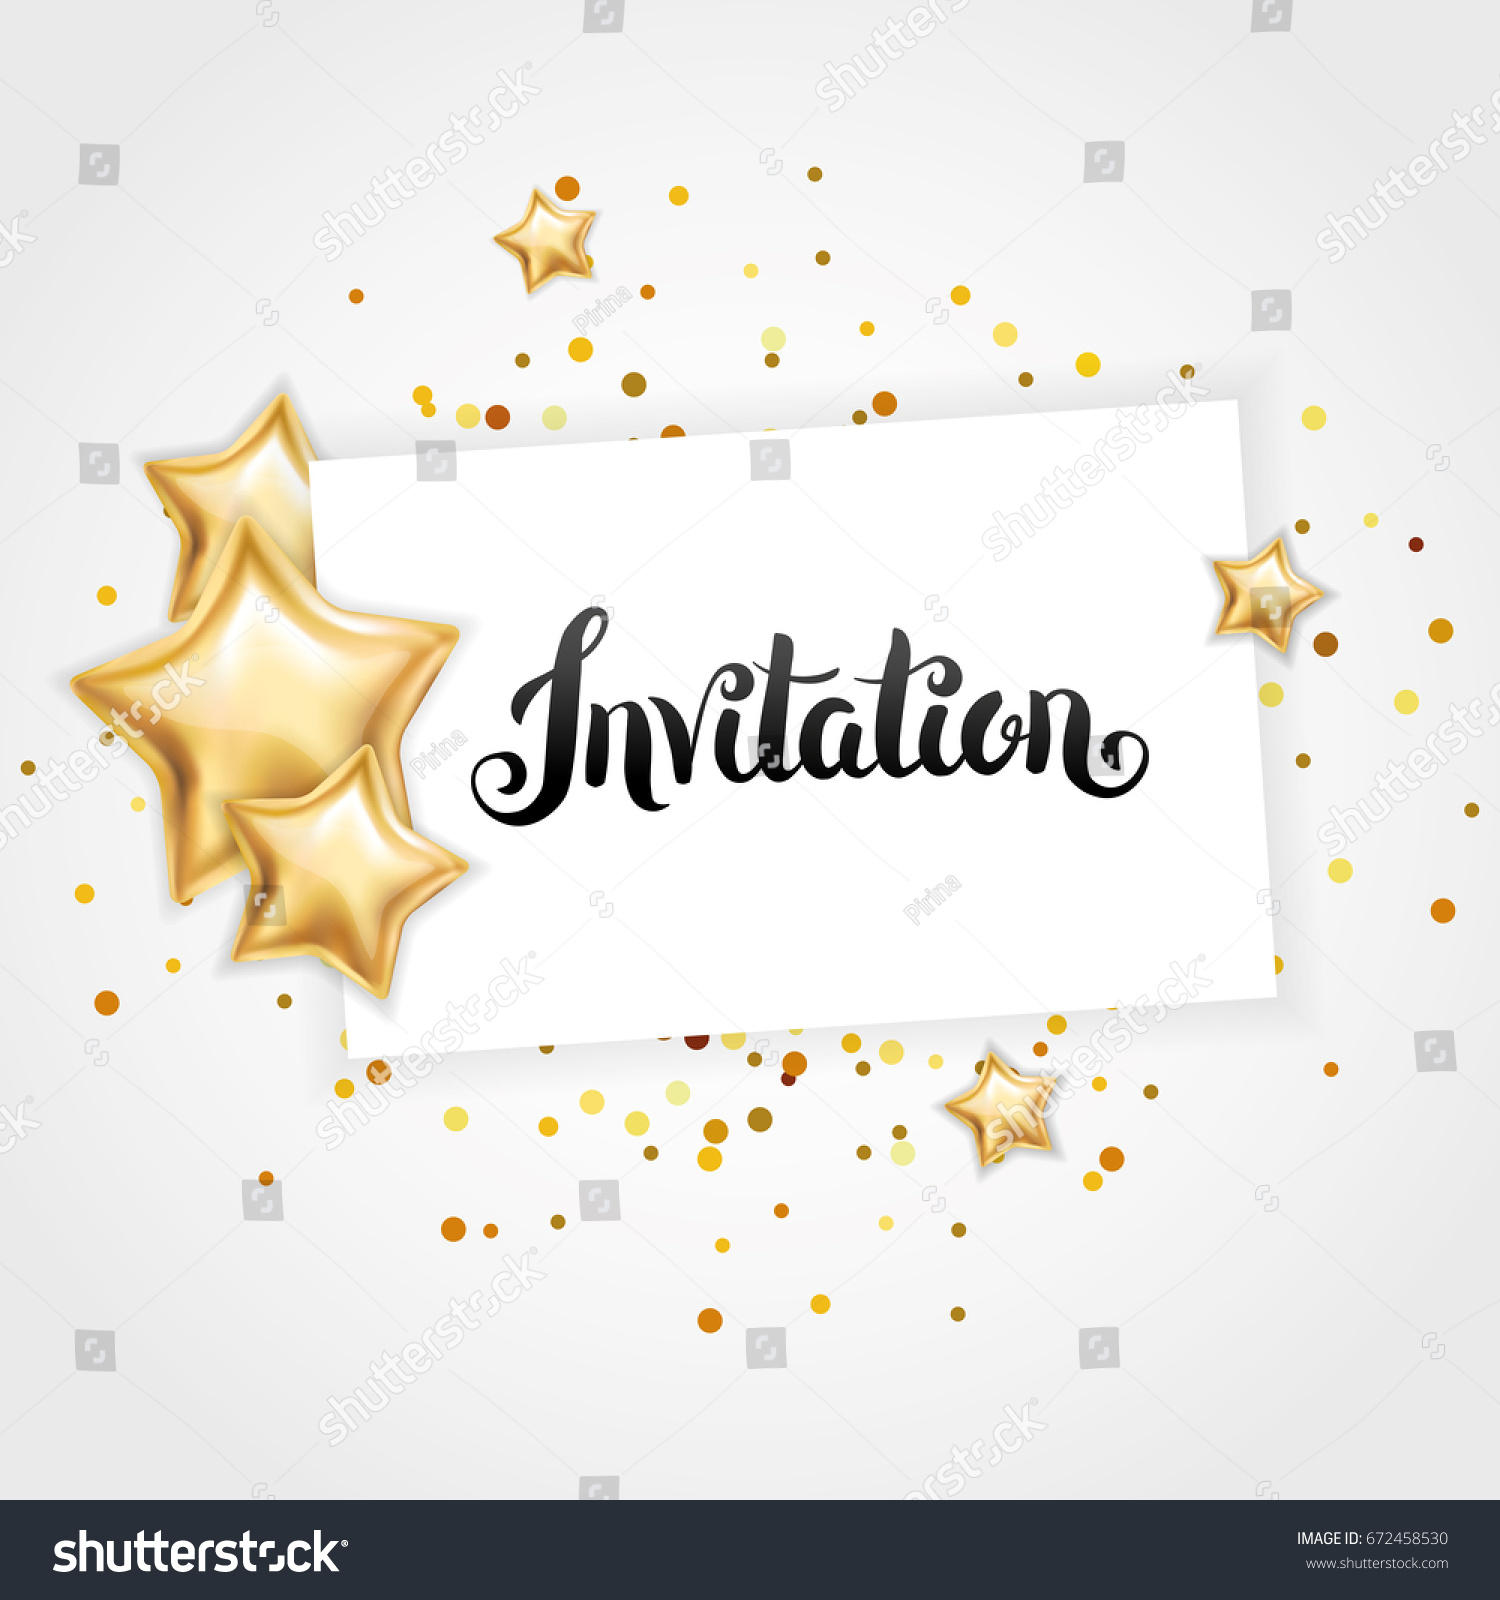 Gold shine star invitation background banners stock vector gold shine star invitation background banners you are invited gold banner with stopboris Images